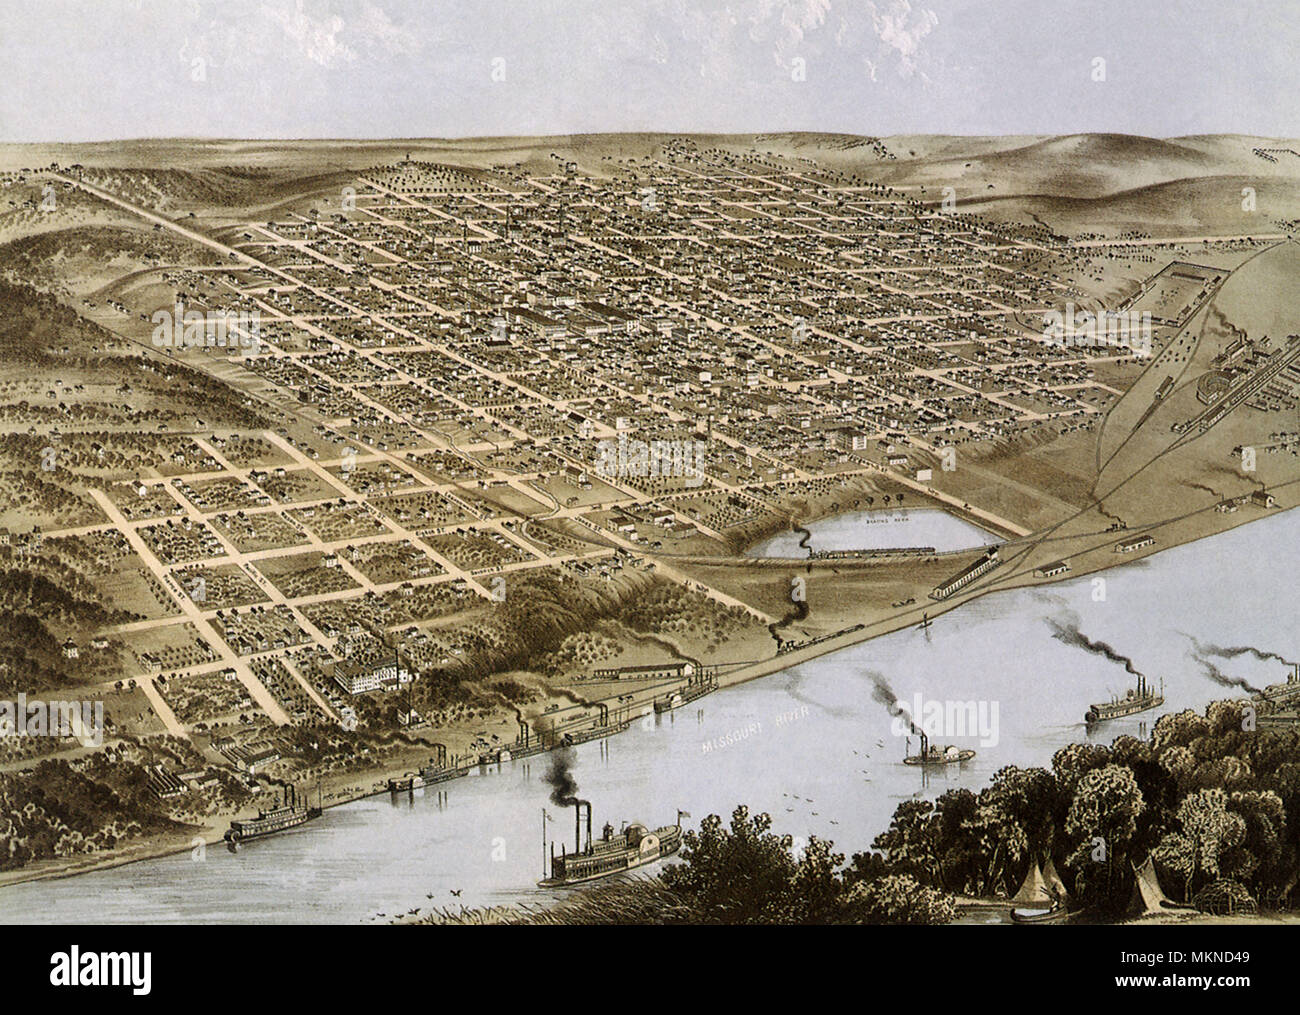 Bird's Eye View of the City of Omaha, Nebraska 1868 Stock